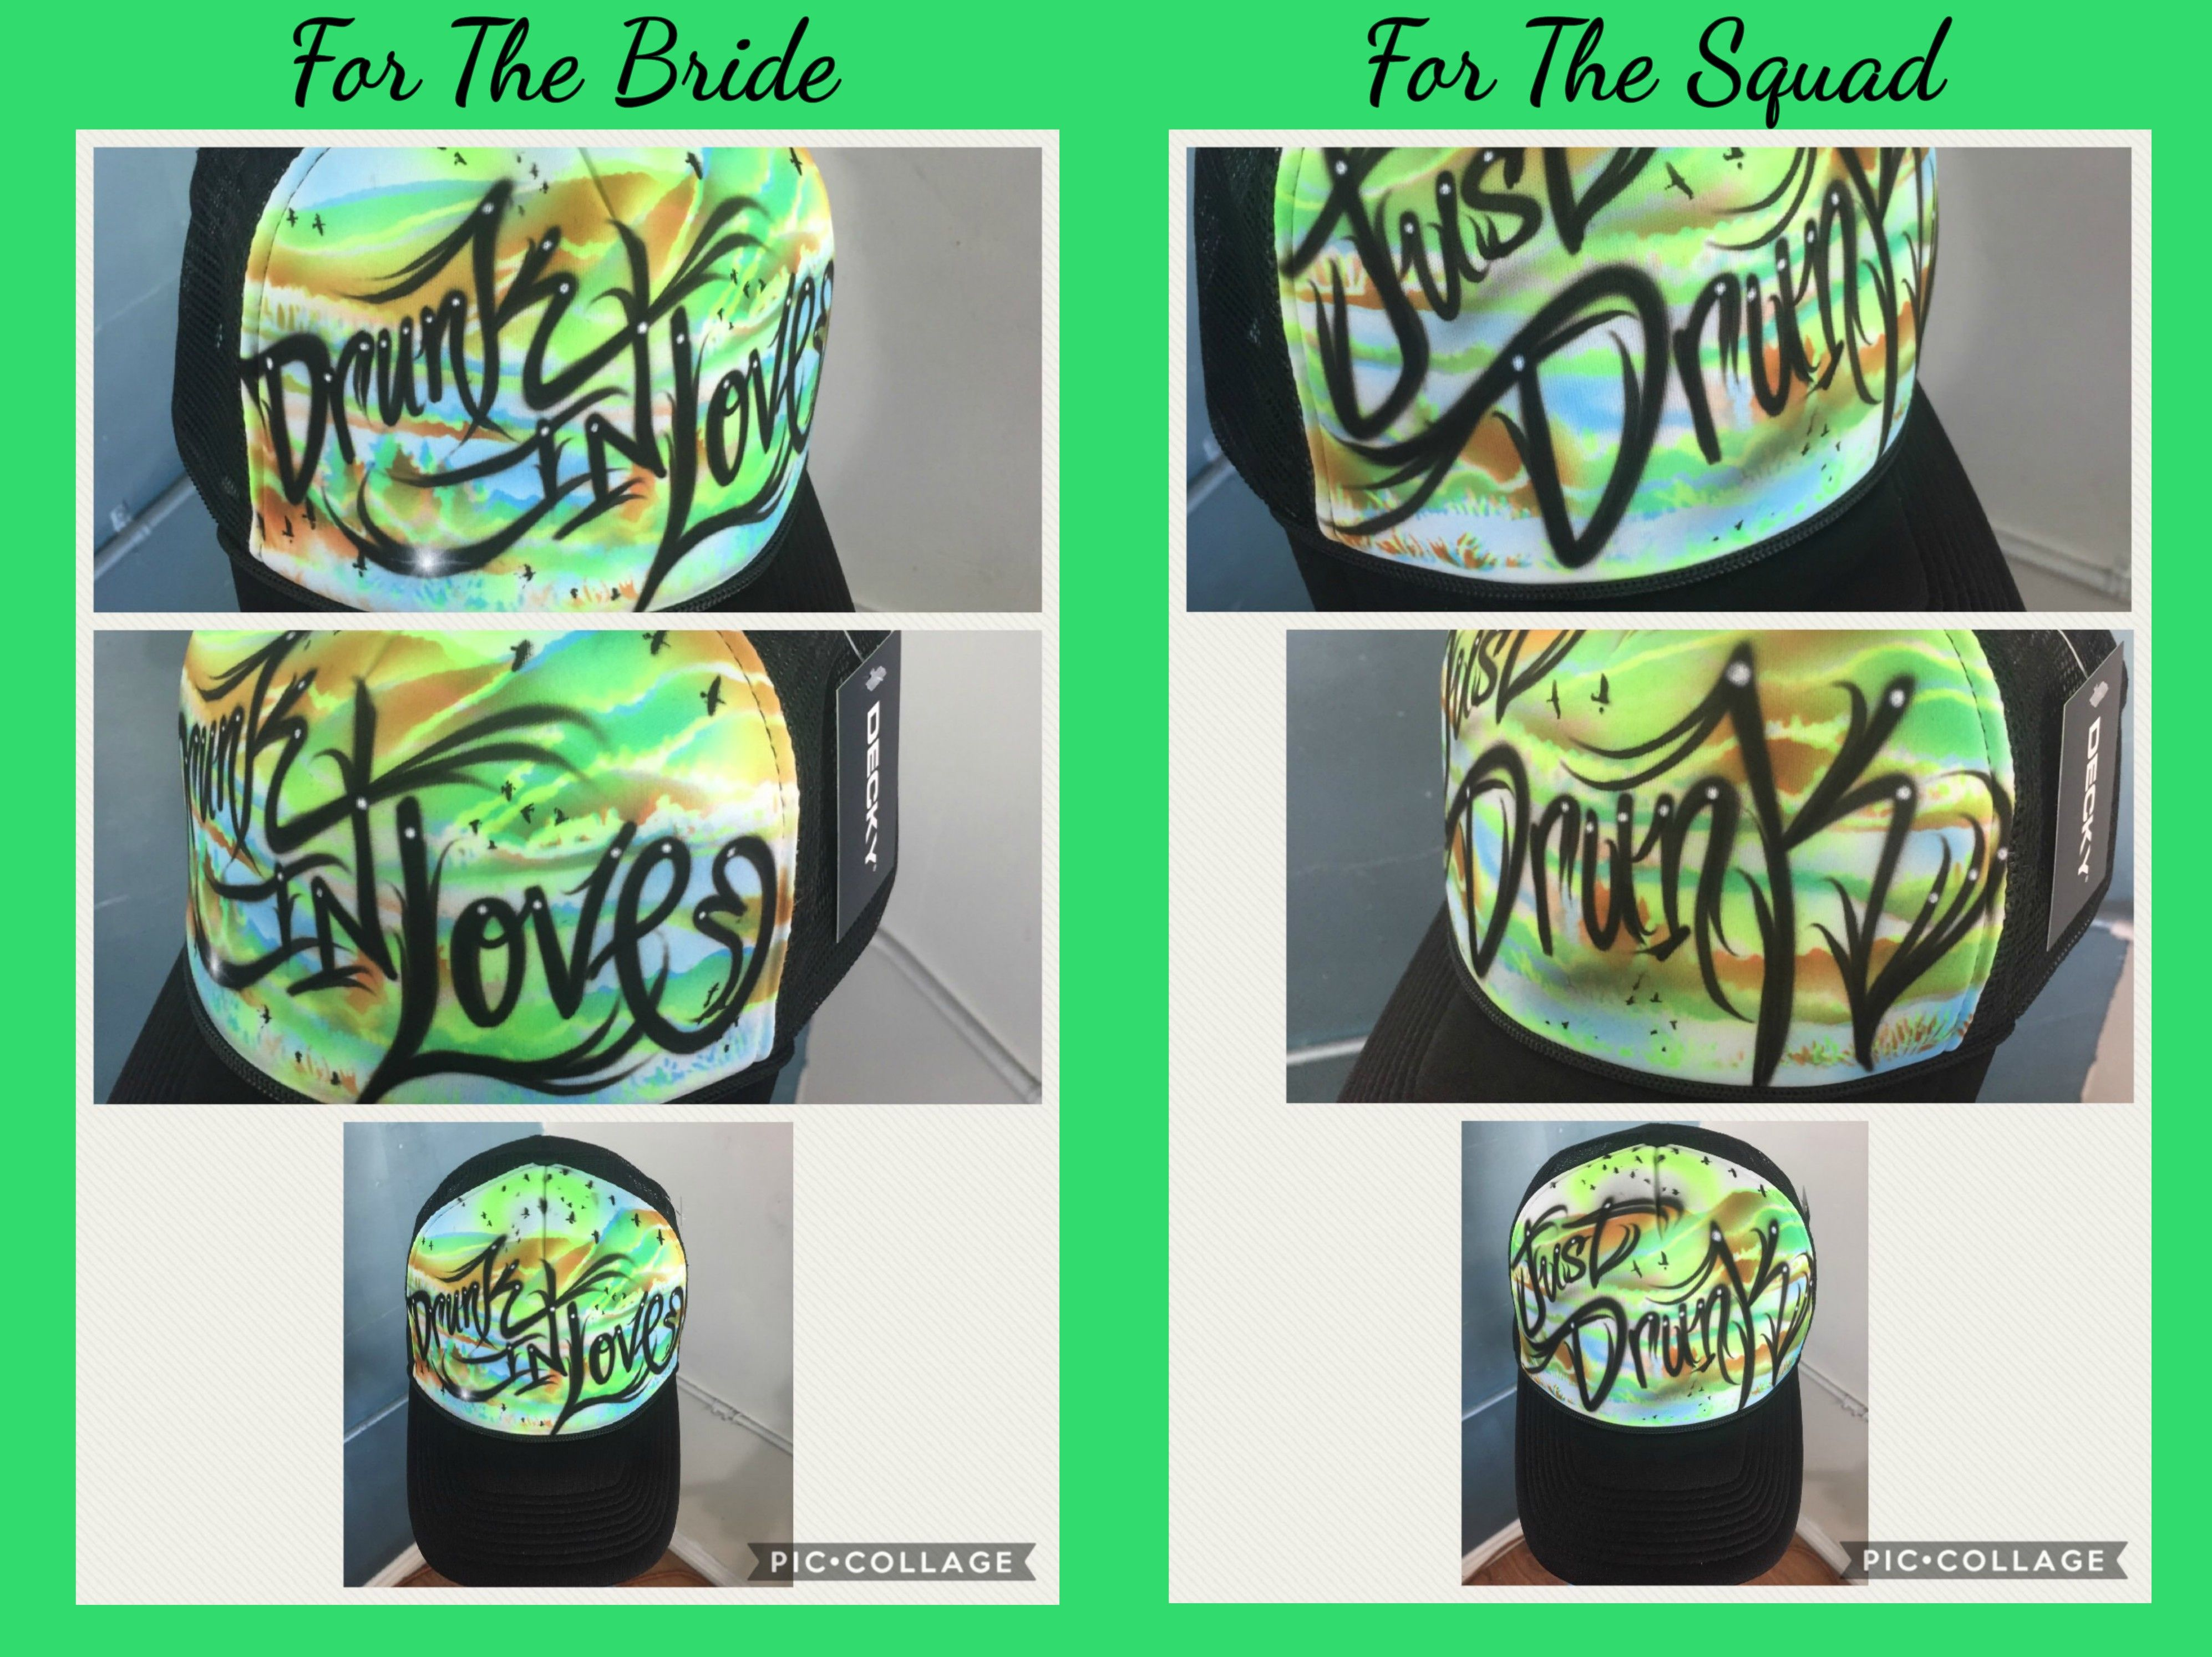 Camping/Wilderness Themed Bachelorette Hats by Mr. Hoodbrush, check us out on Etsy!